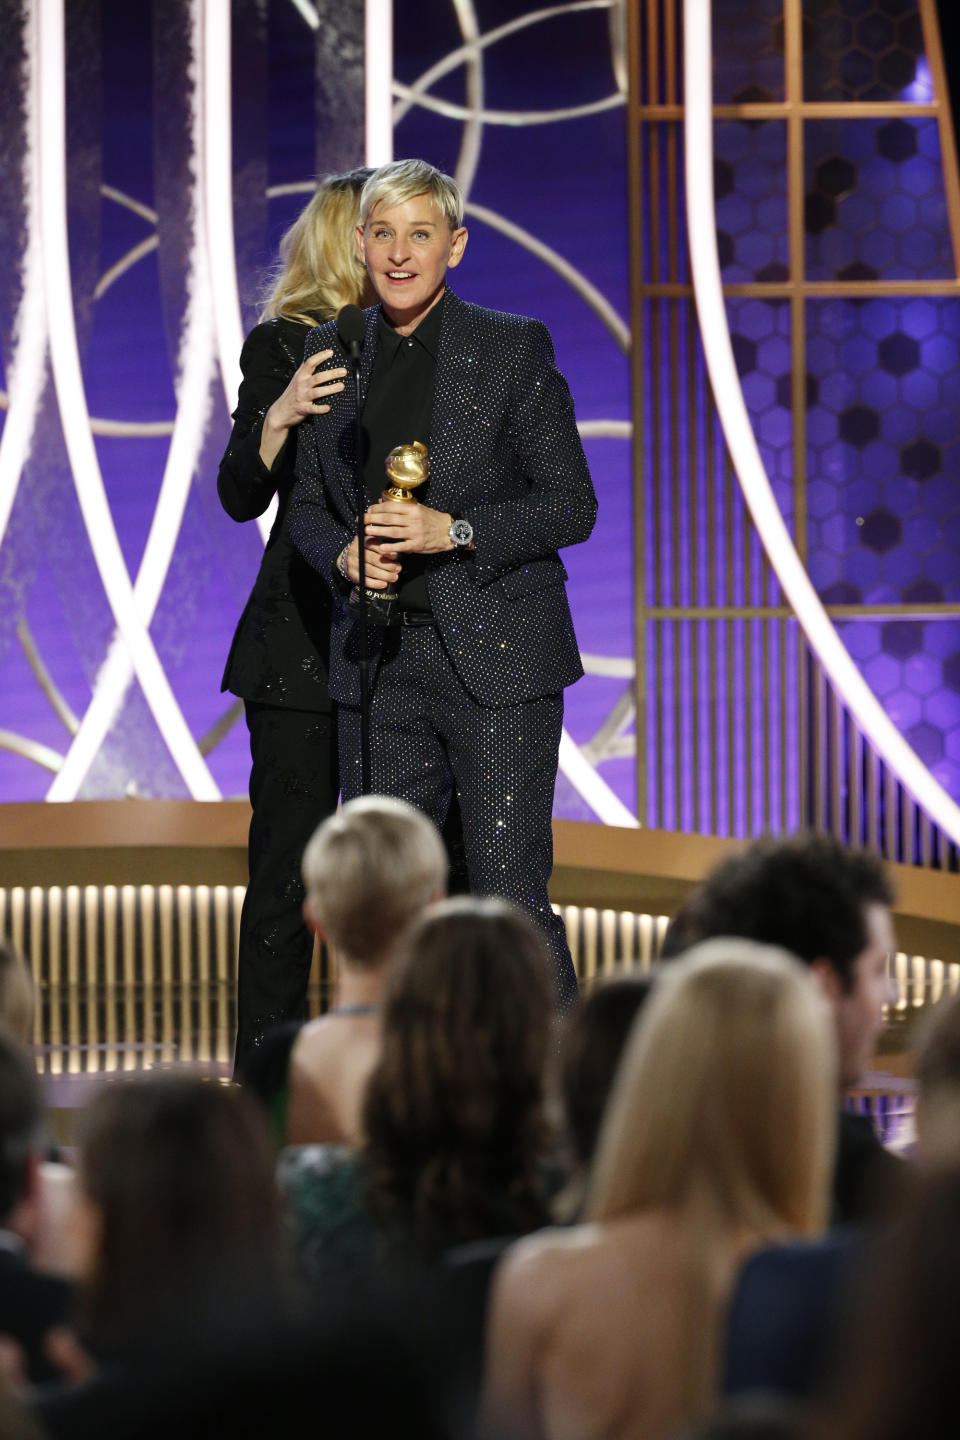 BEVERLY HILLS, CALIFORNIA - JANUARY 05: In this handout photo provided by NBCUniversal Media, LLC,  Ellen DeGeneres accepts the CAROL BURNETT AWARD presented by Kate McKinnon onstage during the 77th Annual Golden Globe Awards at The Beverly Hilton Hotel on January 5, 2020 in Beverly Hills, California. (Photo by Paul Drinkwater/NBCUniversal Media, LLC via Getty Images)